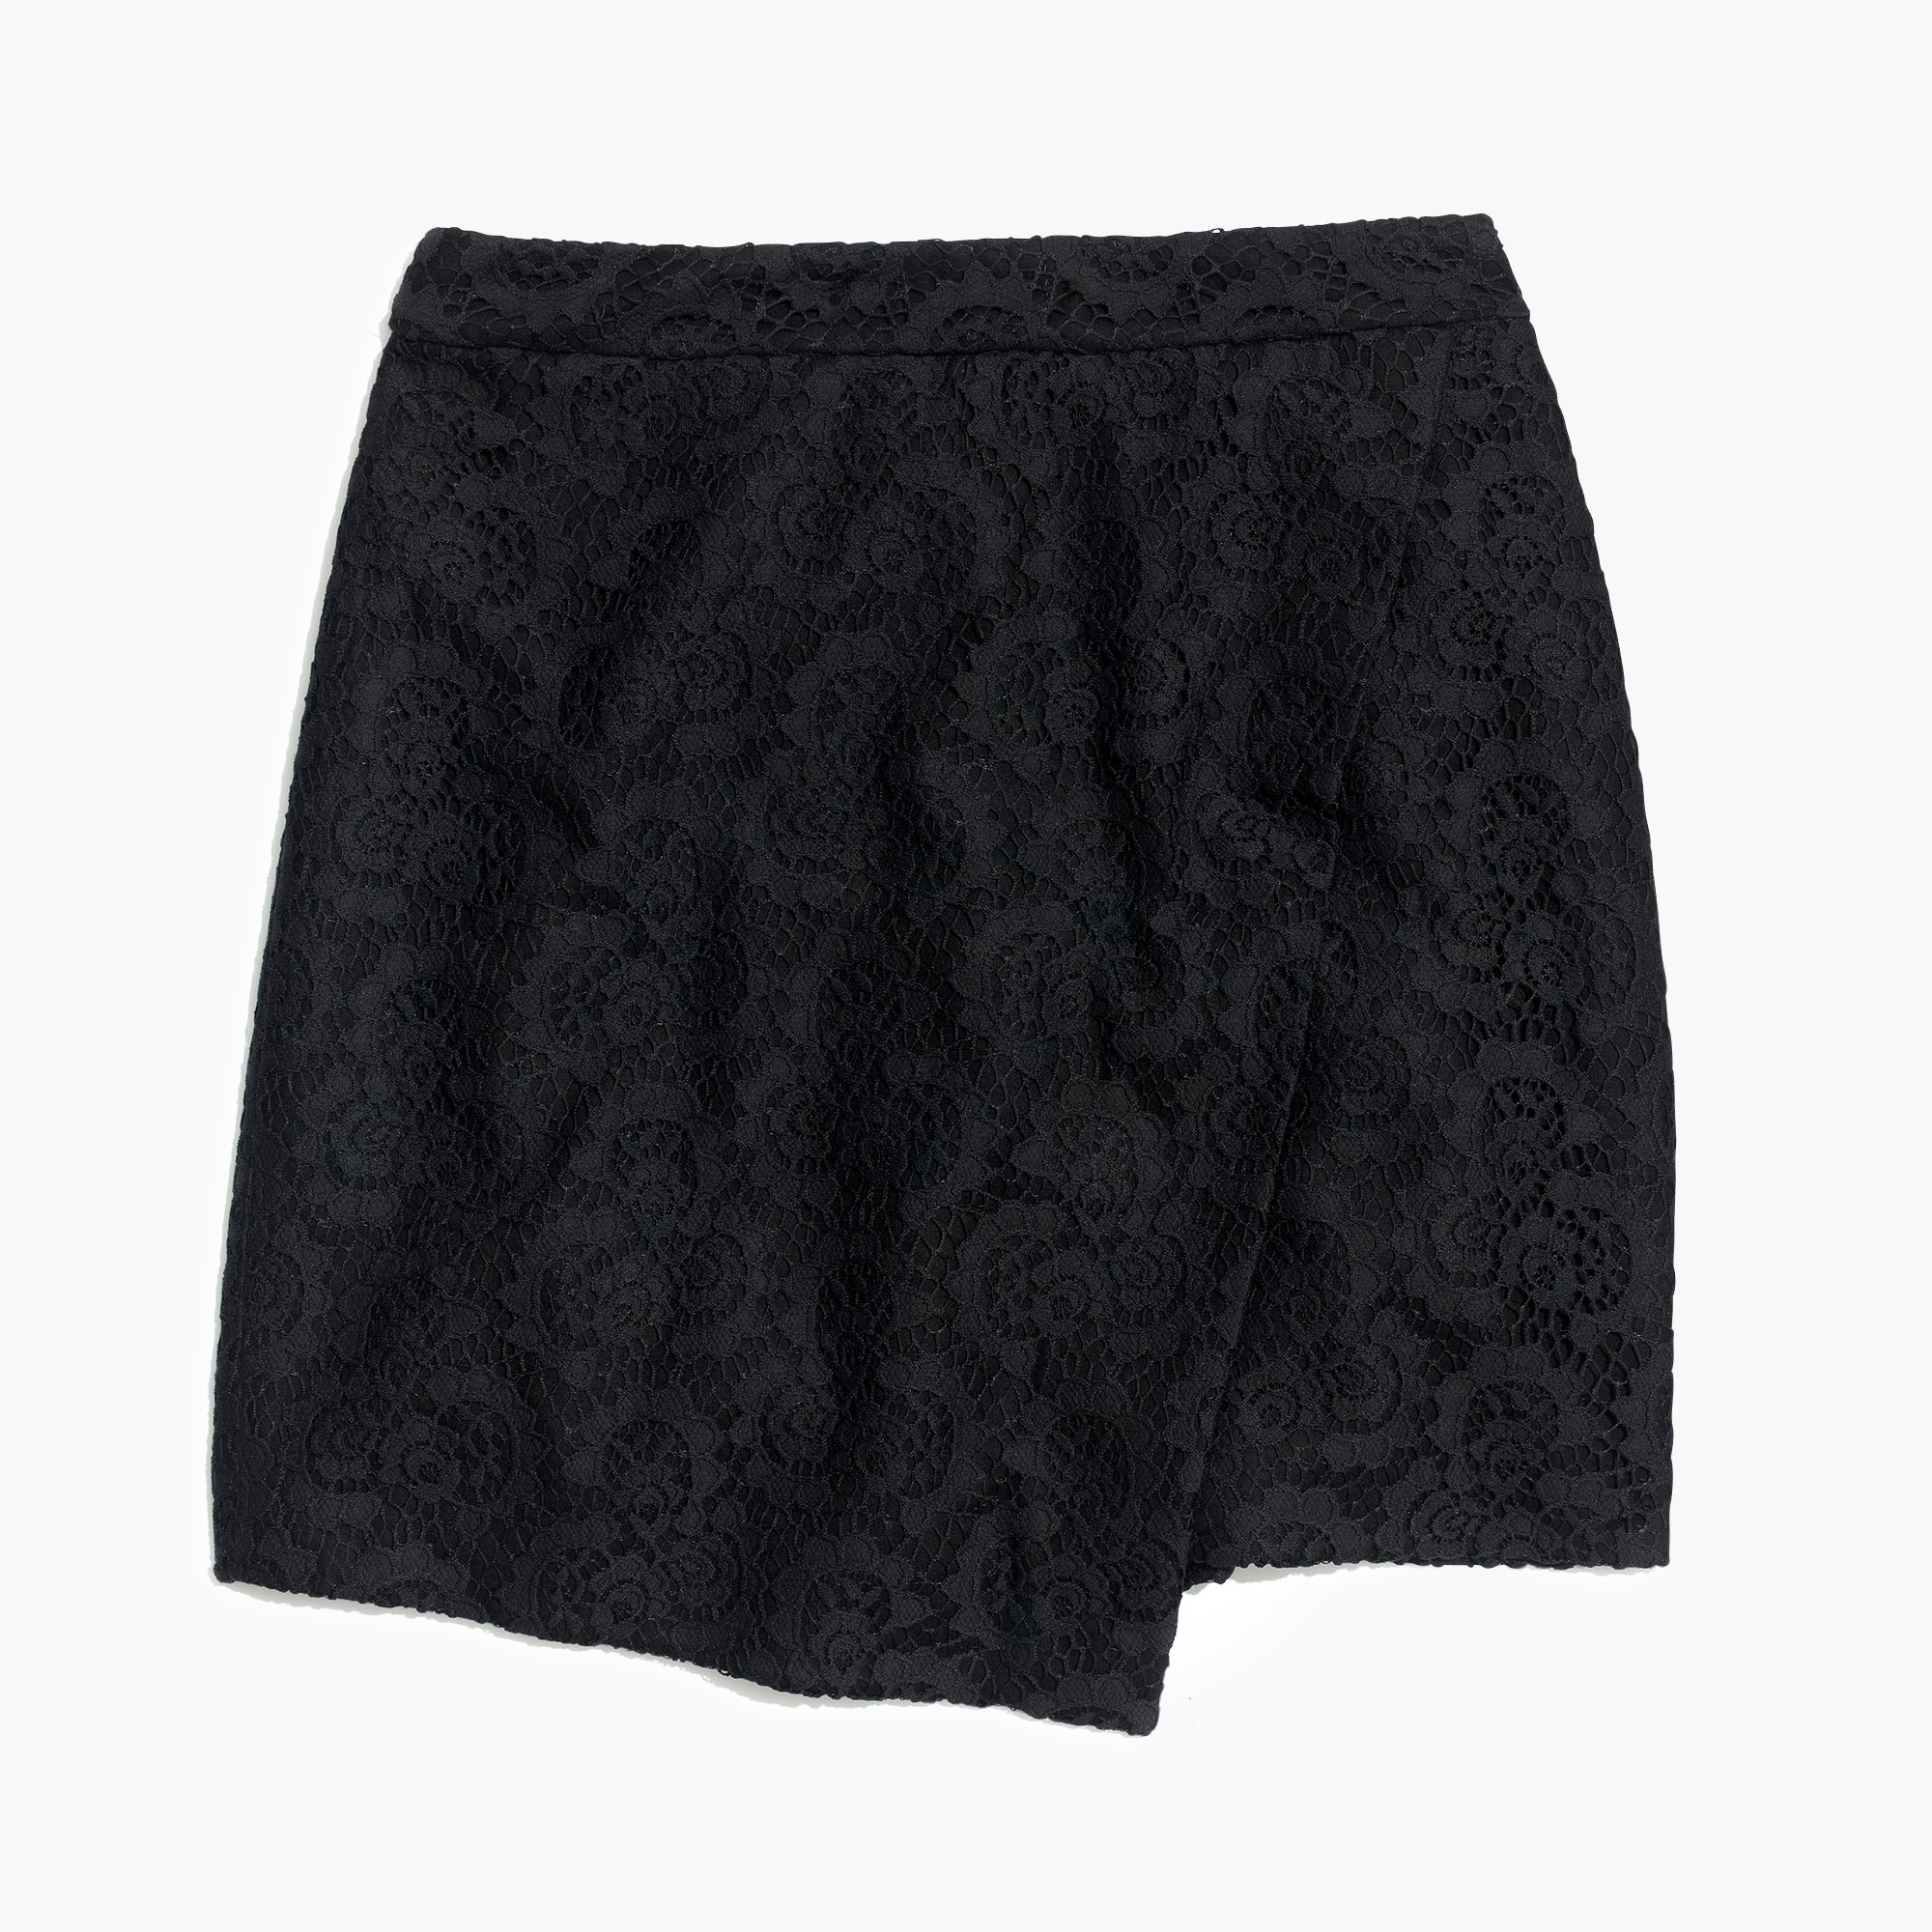 Madewell Lace Asymmetrical Mini Skirt in Black | Lyst